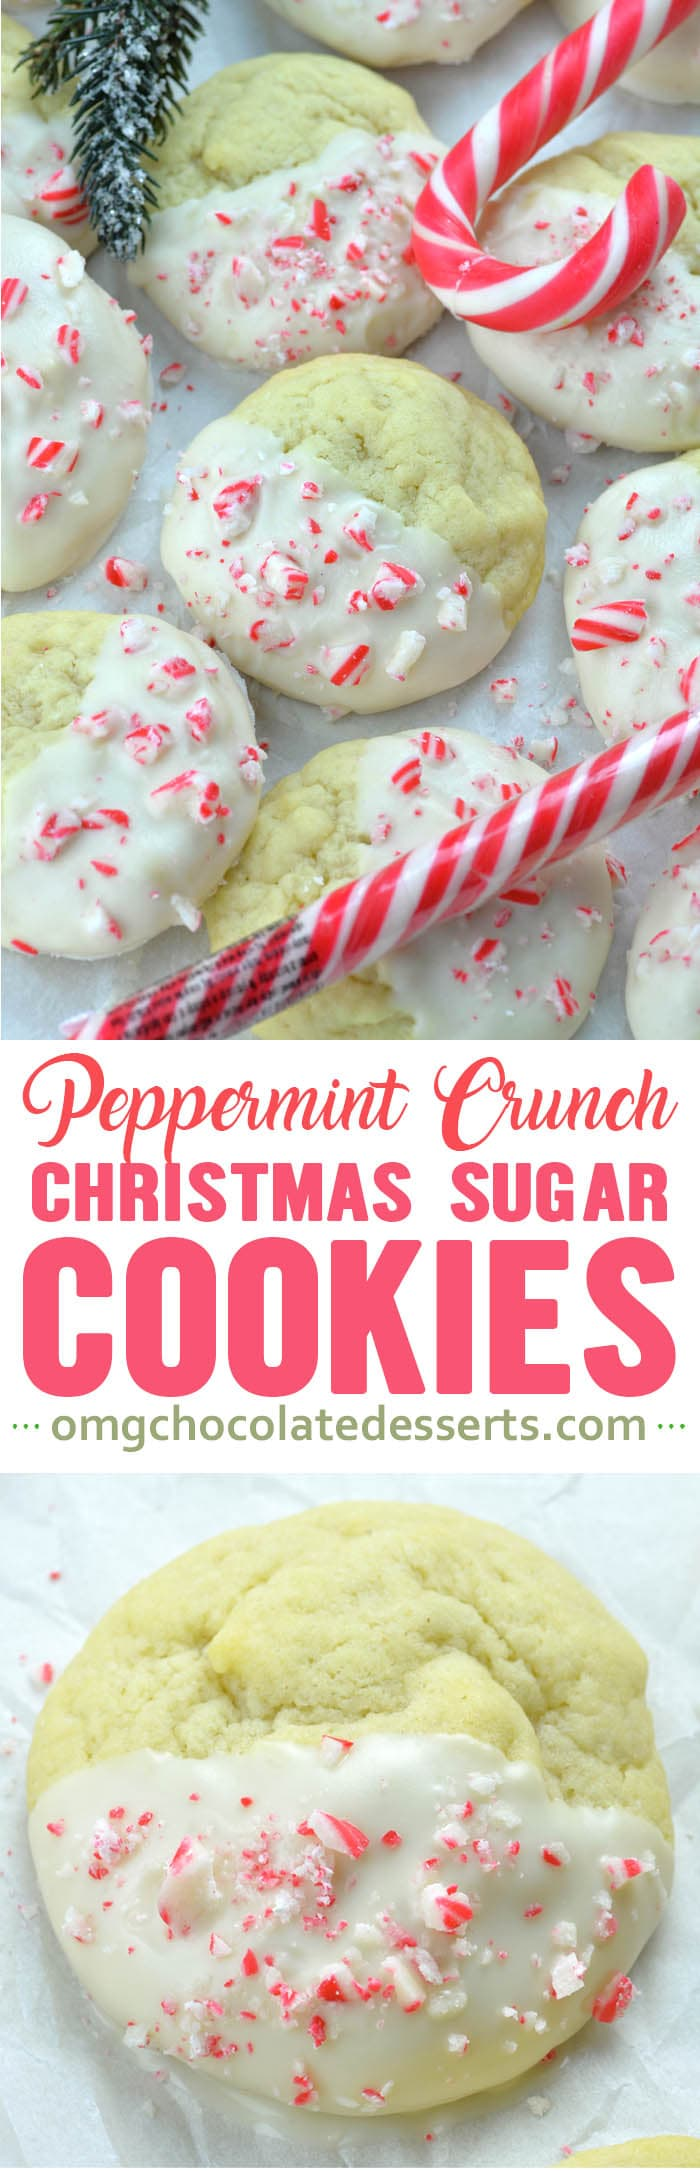 This Peppermint Crunch Sugar Cookies are as simple and easy to make as they are festive and delicious to eat.